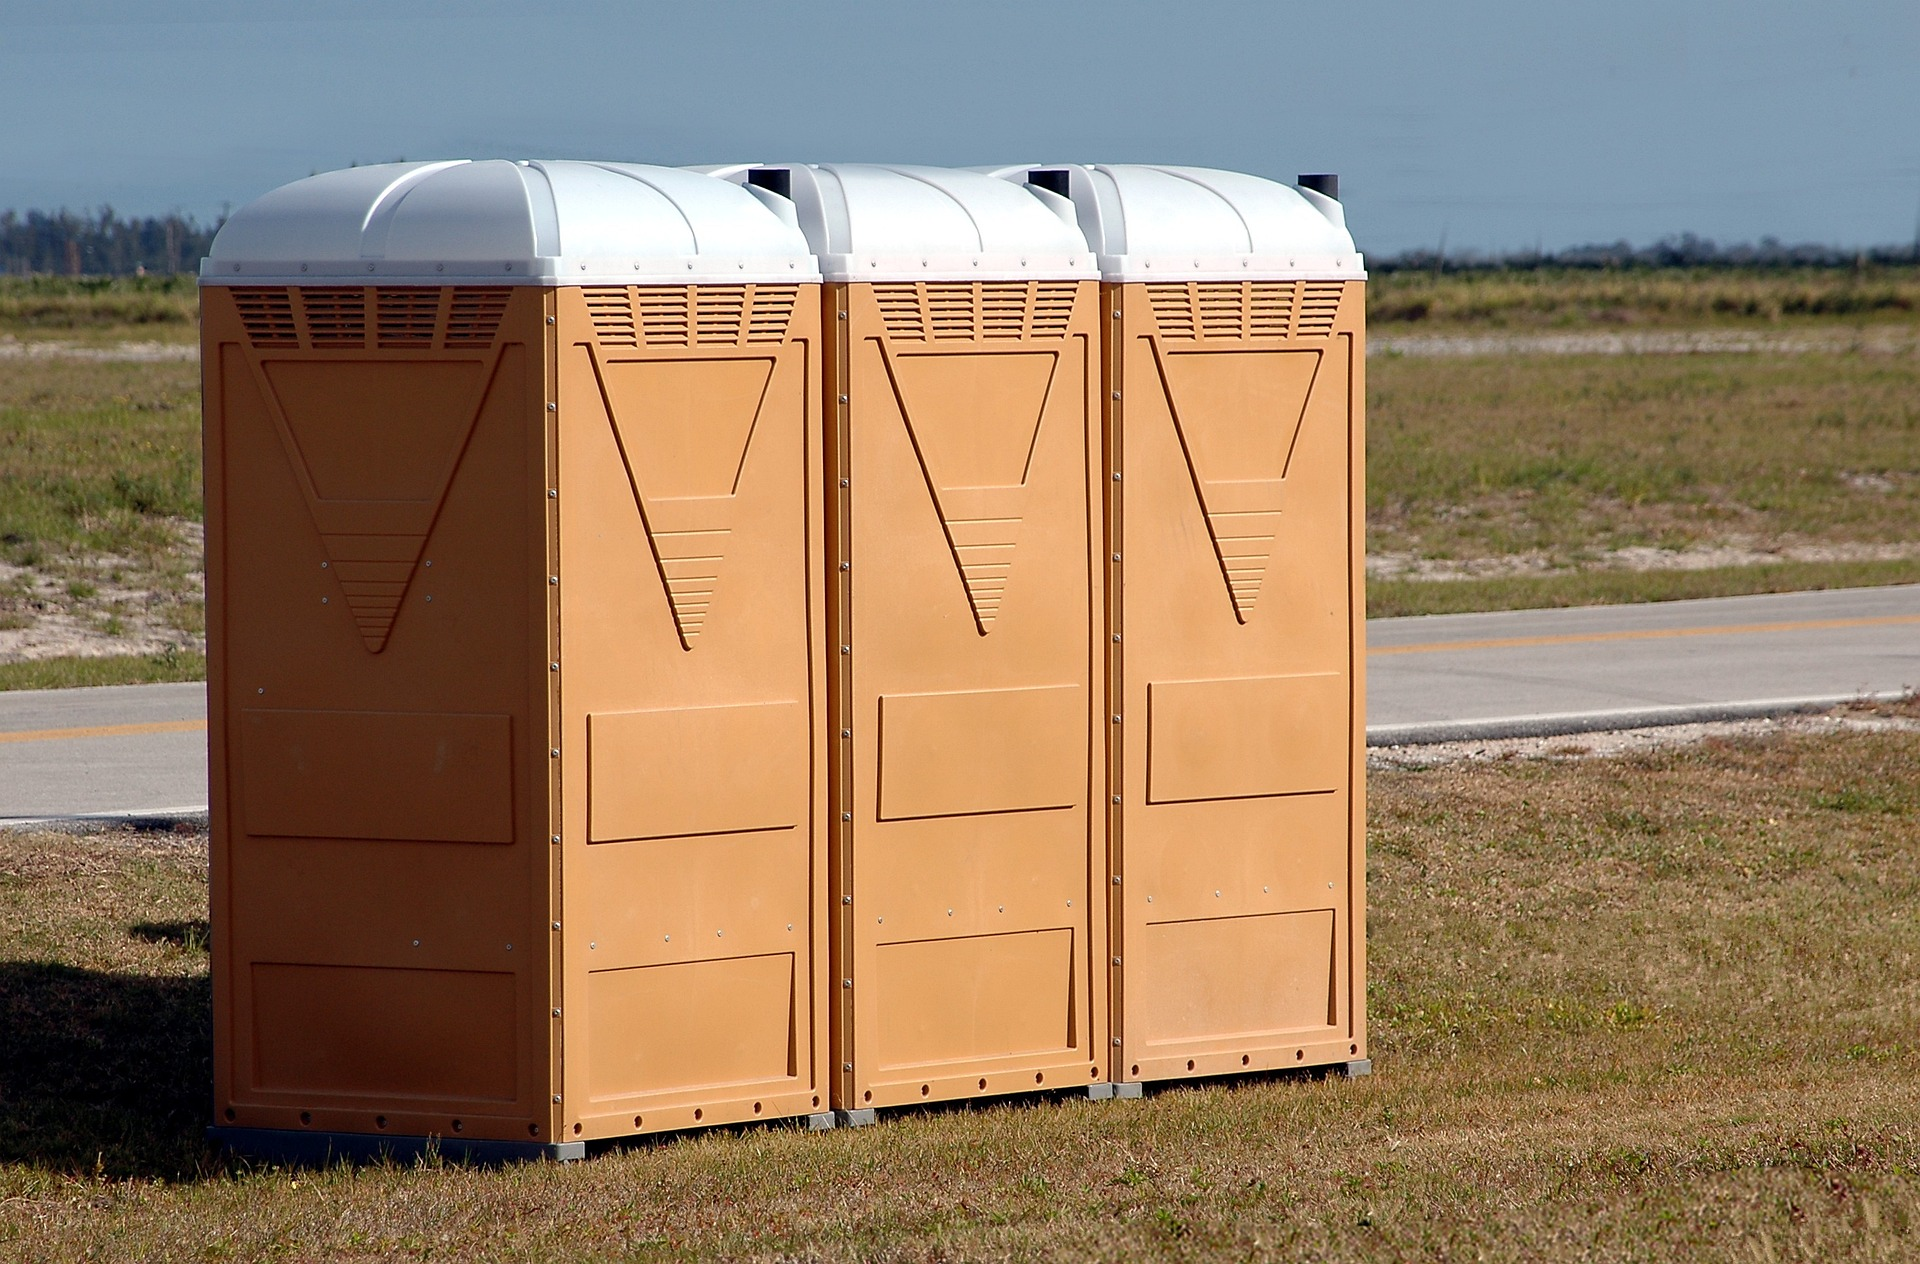 portable restrooms in a field